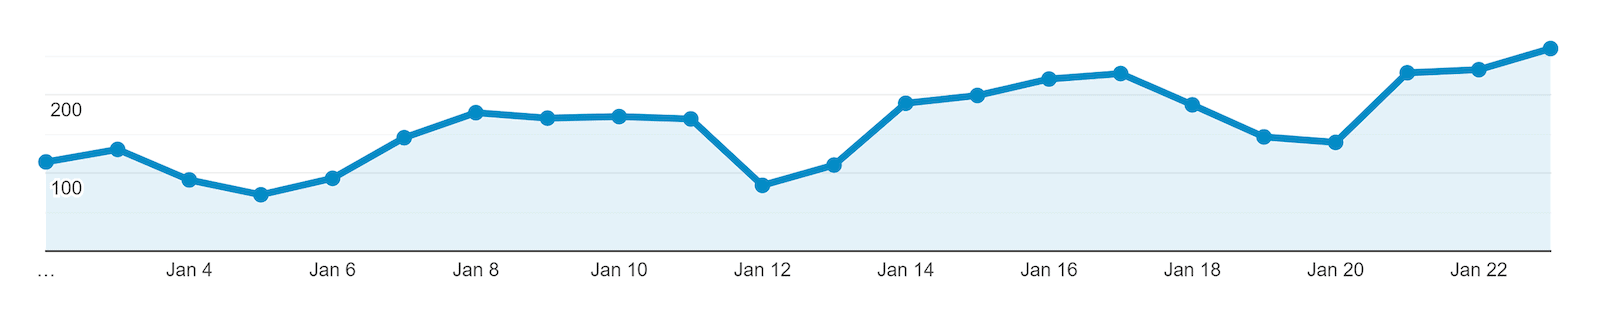 Google Analytics traffic after content change